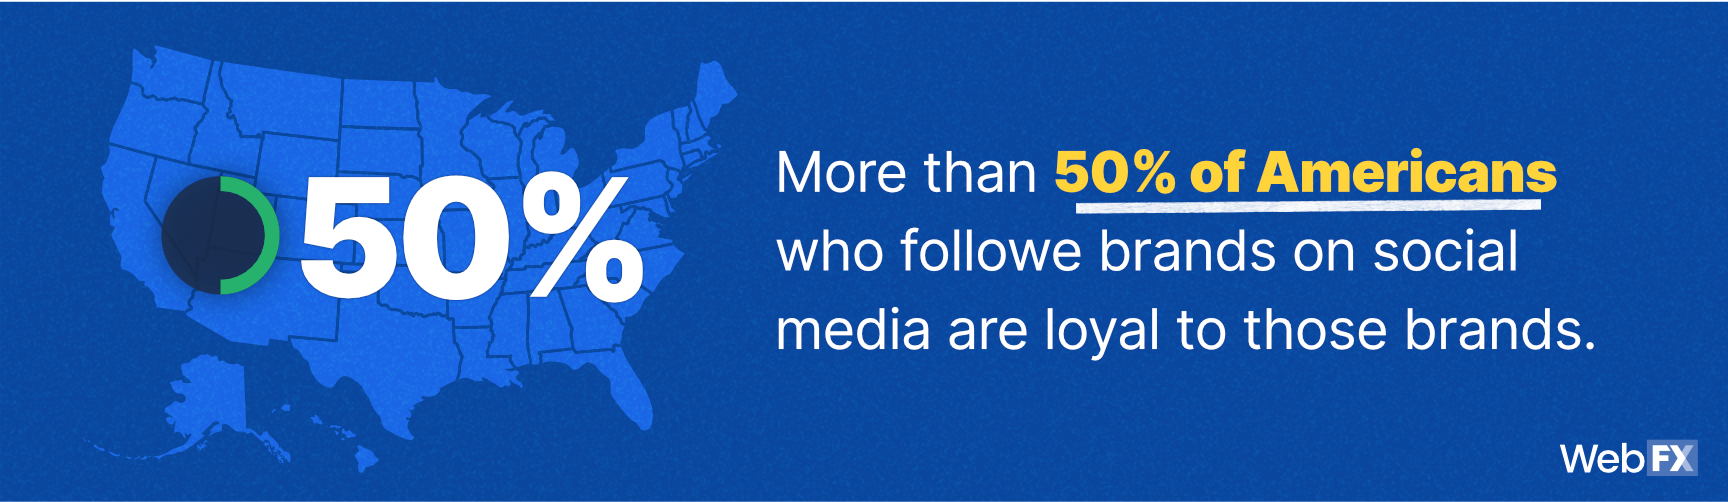 A statistic on brand loyalty and social media